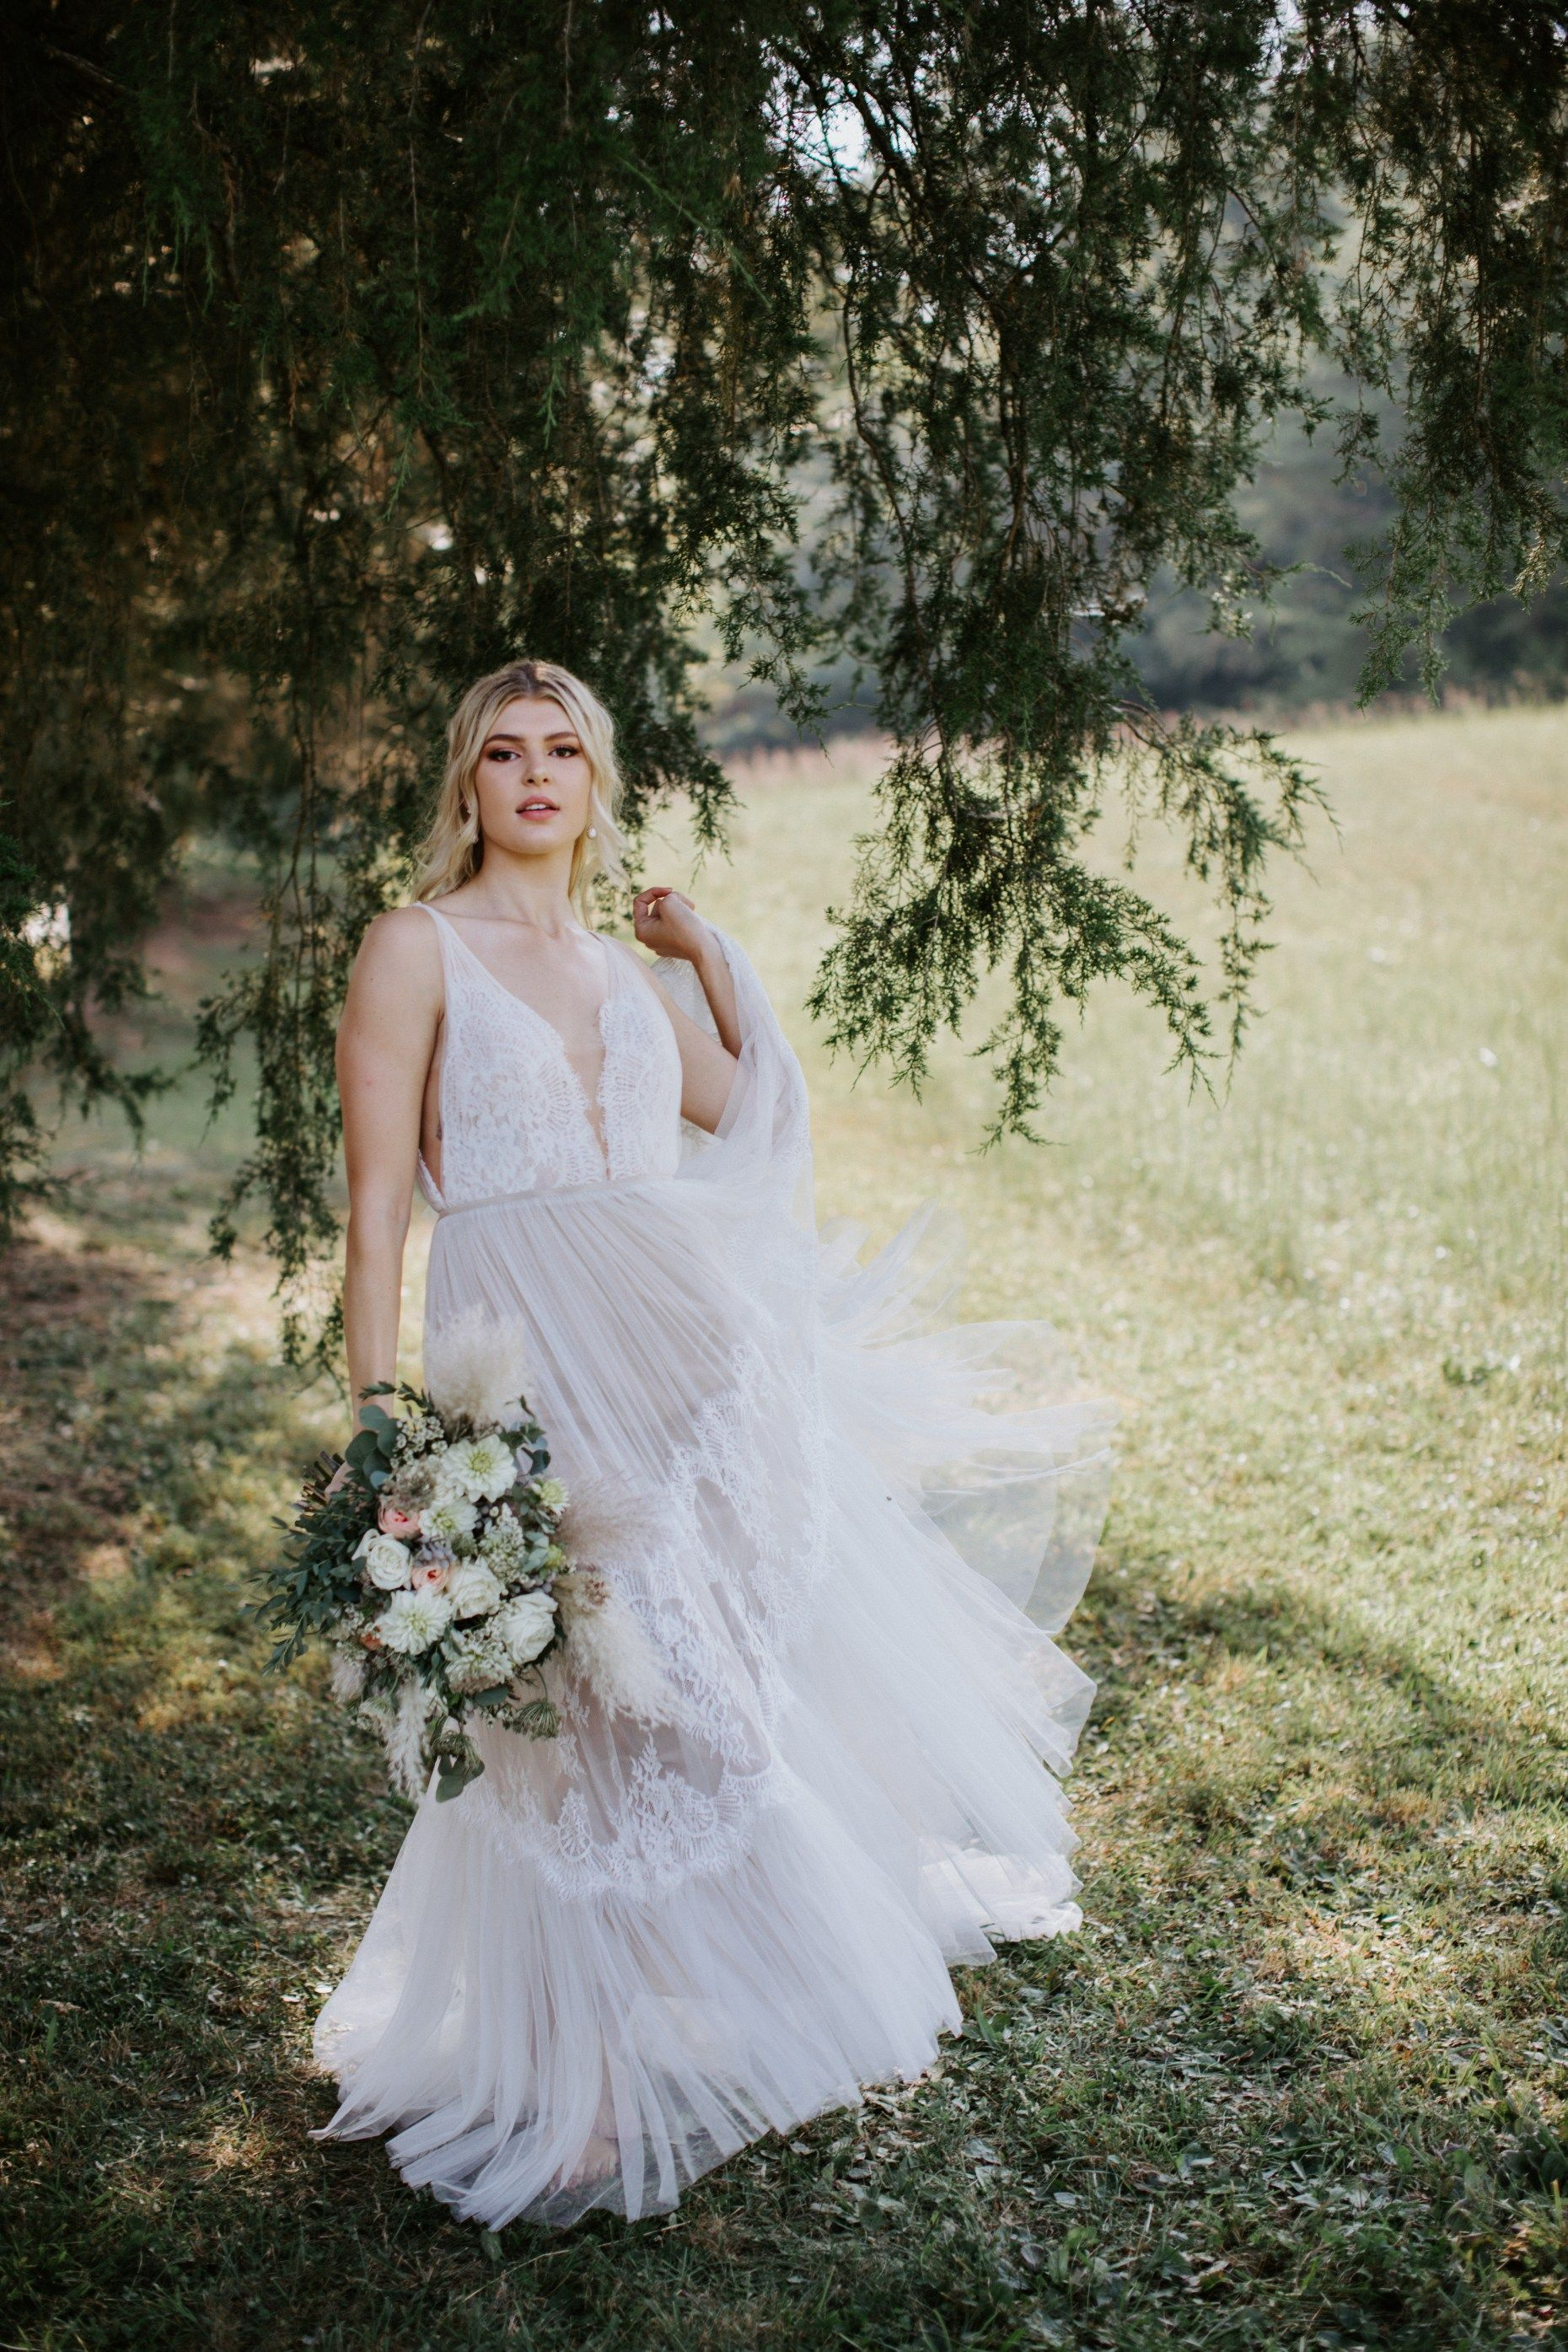 Bridal Styled Shoot Willowby By Watters From Lillian Ruth Bride Knoxville Tennessee In 2020 Bridal Styled Shoot Knoxville Wedding Tennessee Wedding